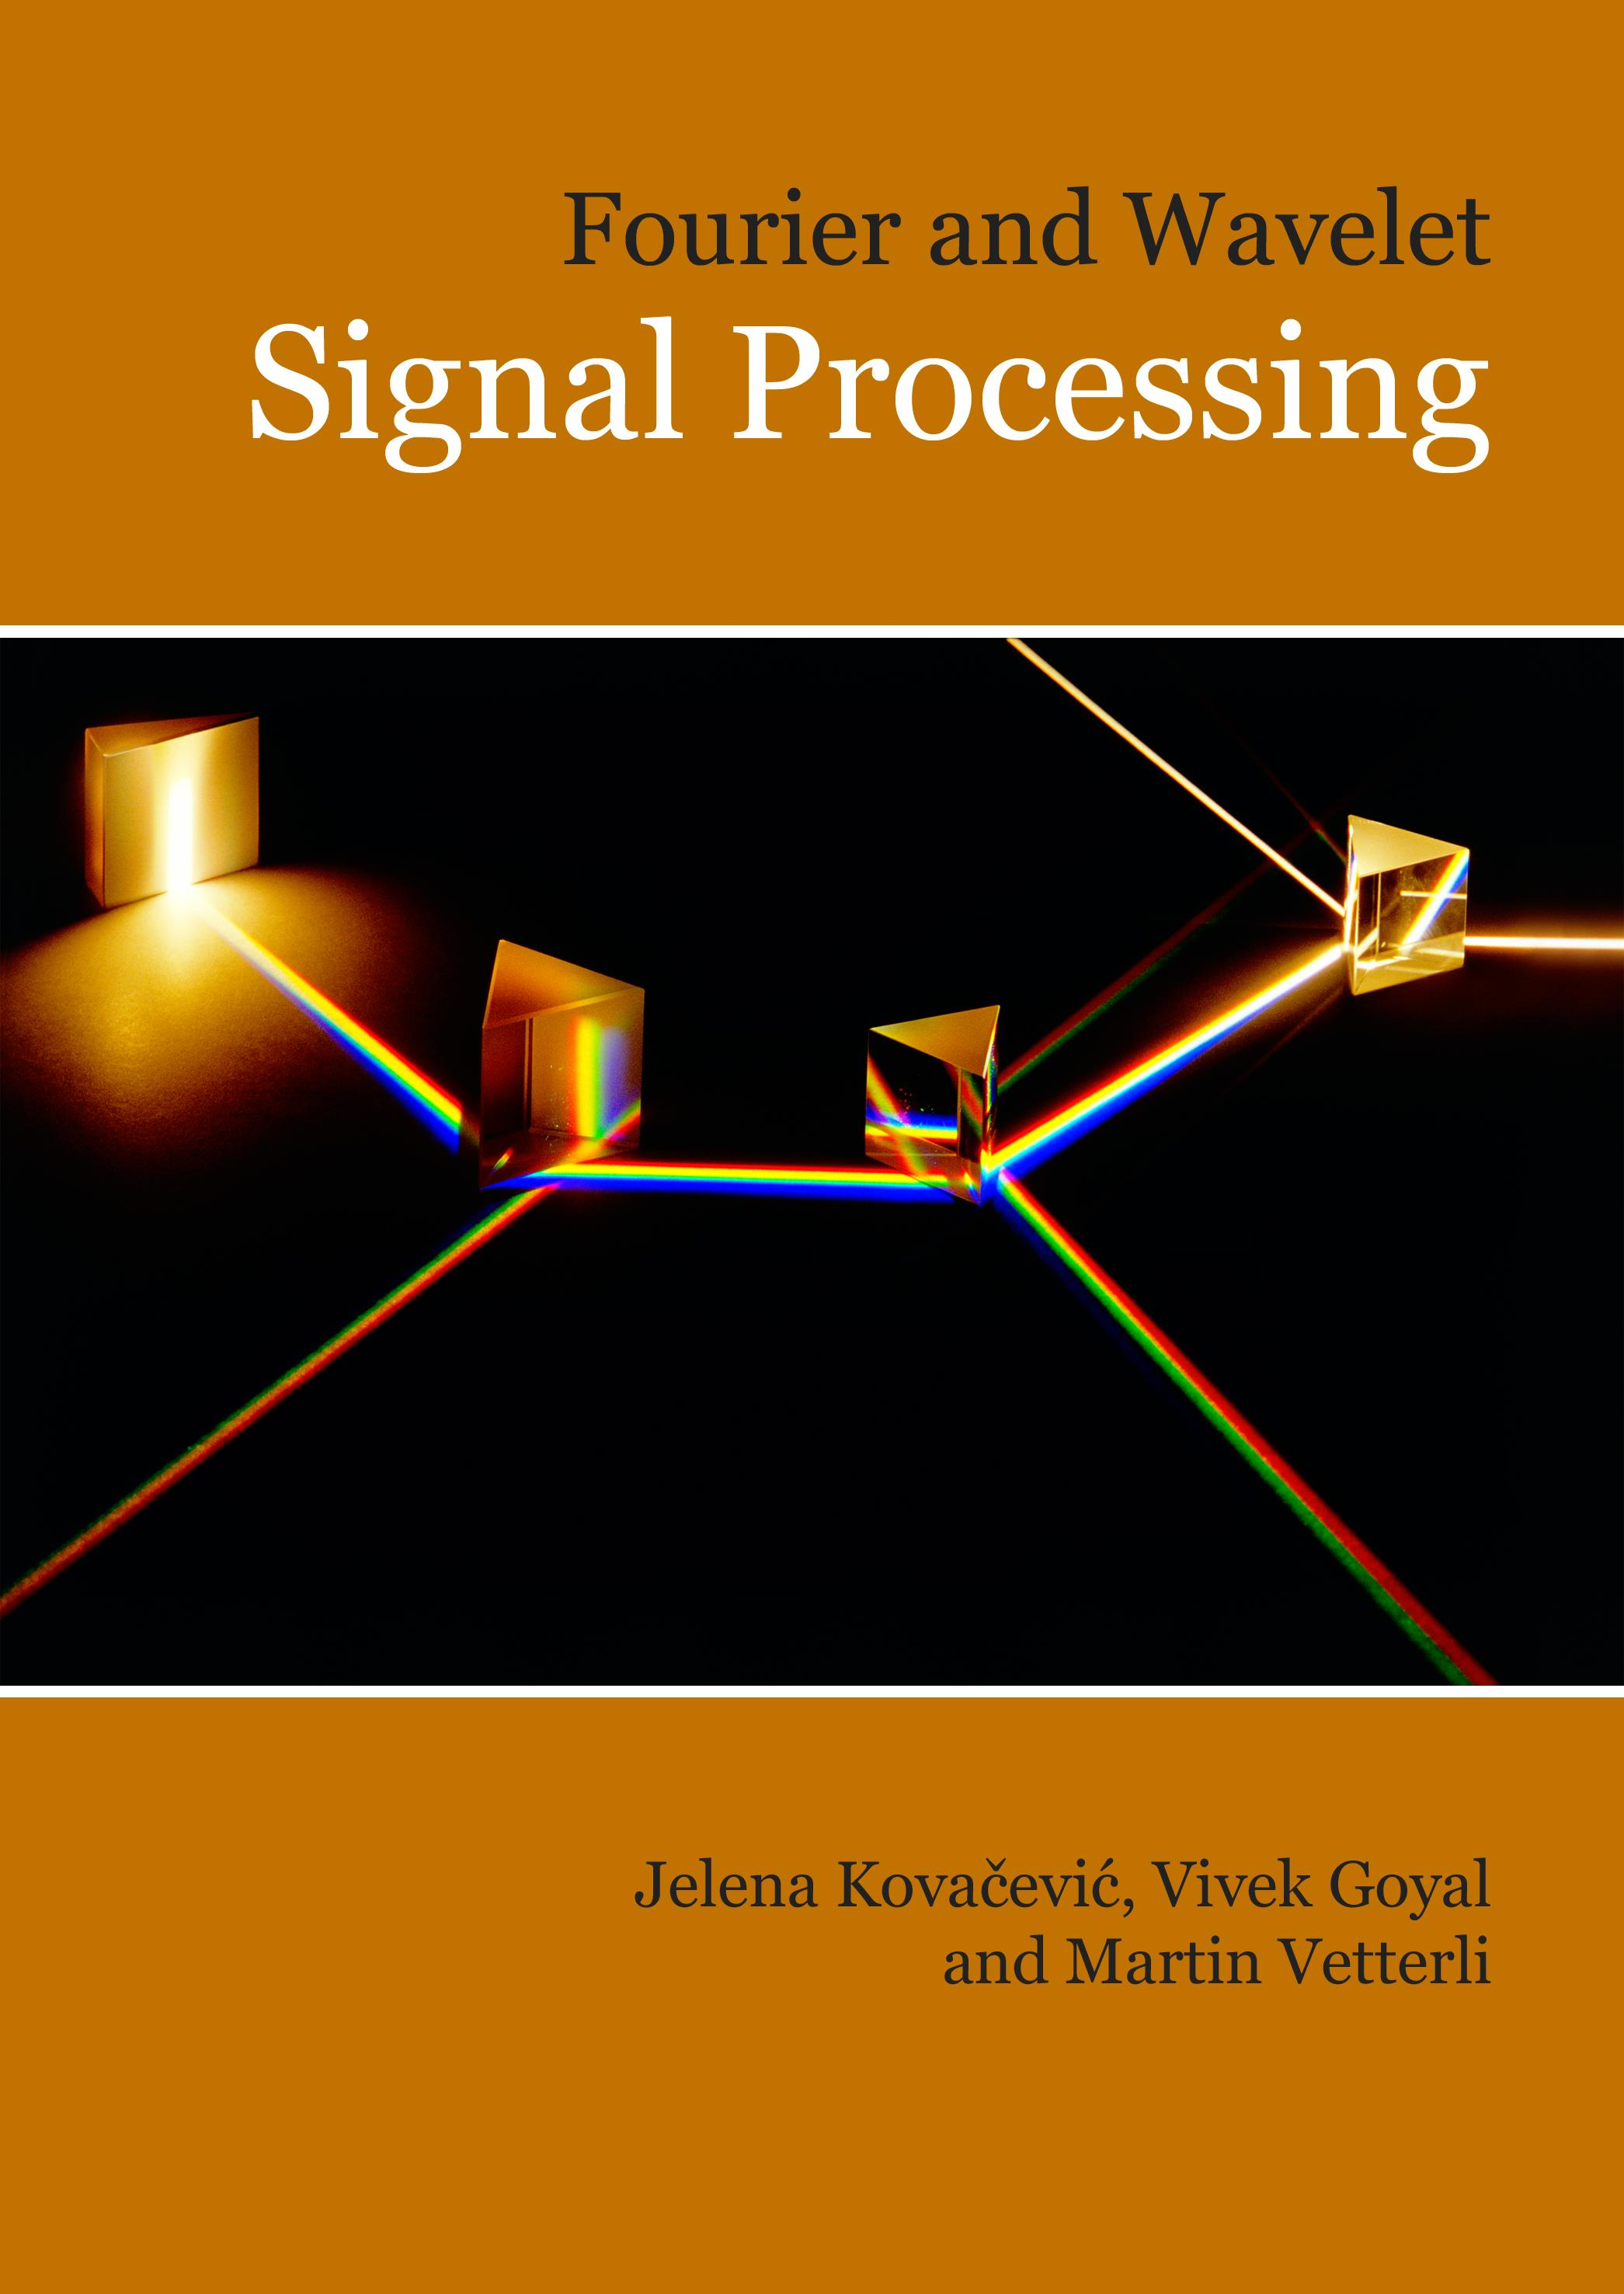 Fourier and Wavelet Signal Processing by Kovacevic, Goyal, and Vetterli